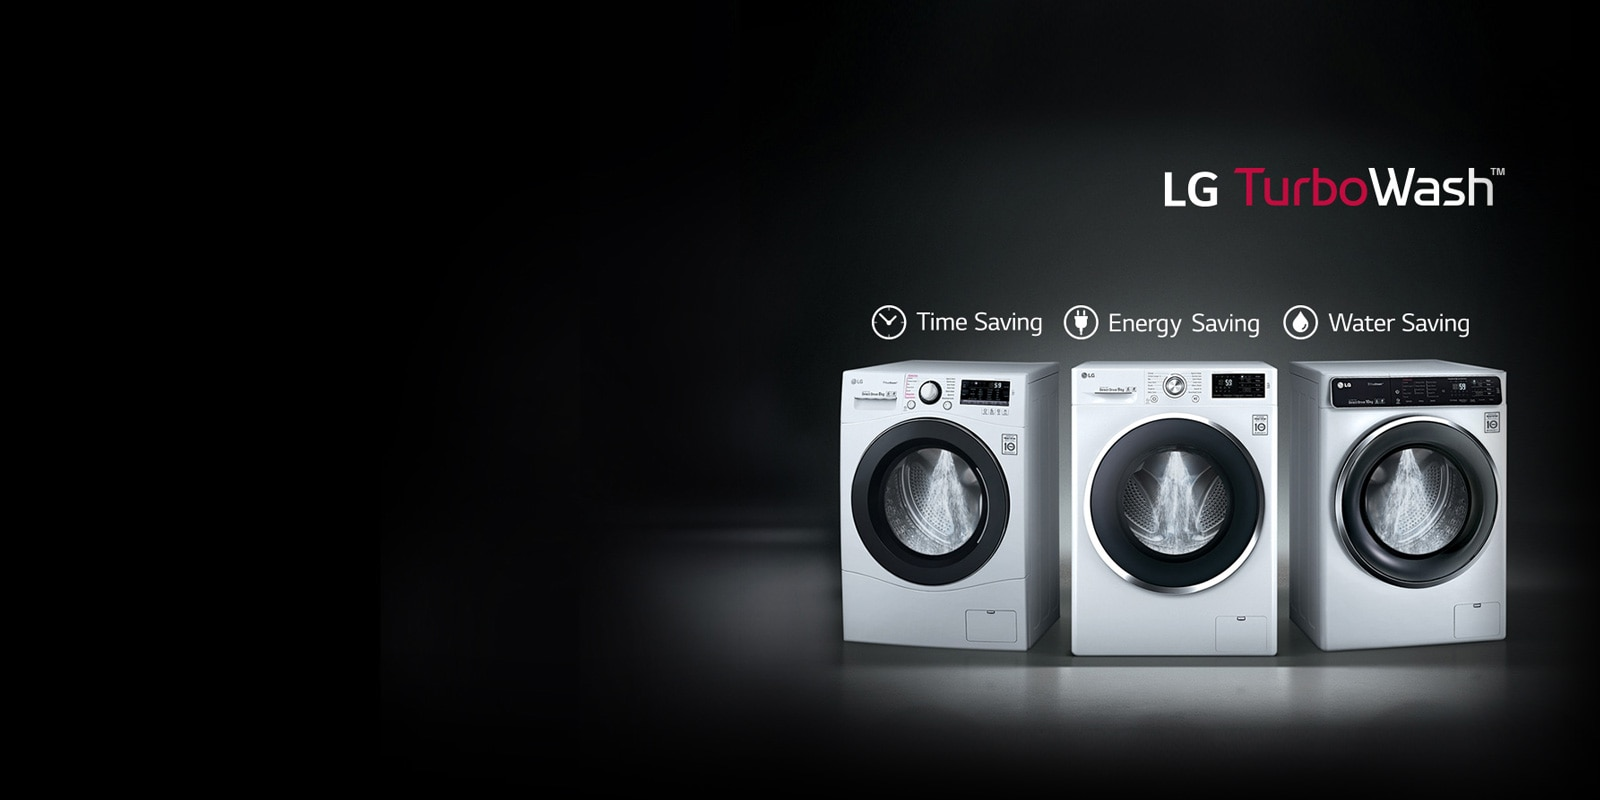 Fast & Clean Laundry with TurboWashTM